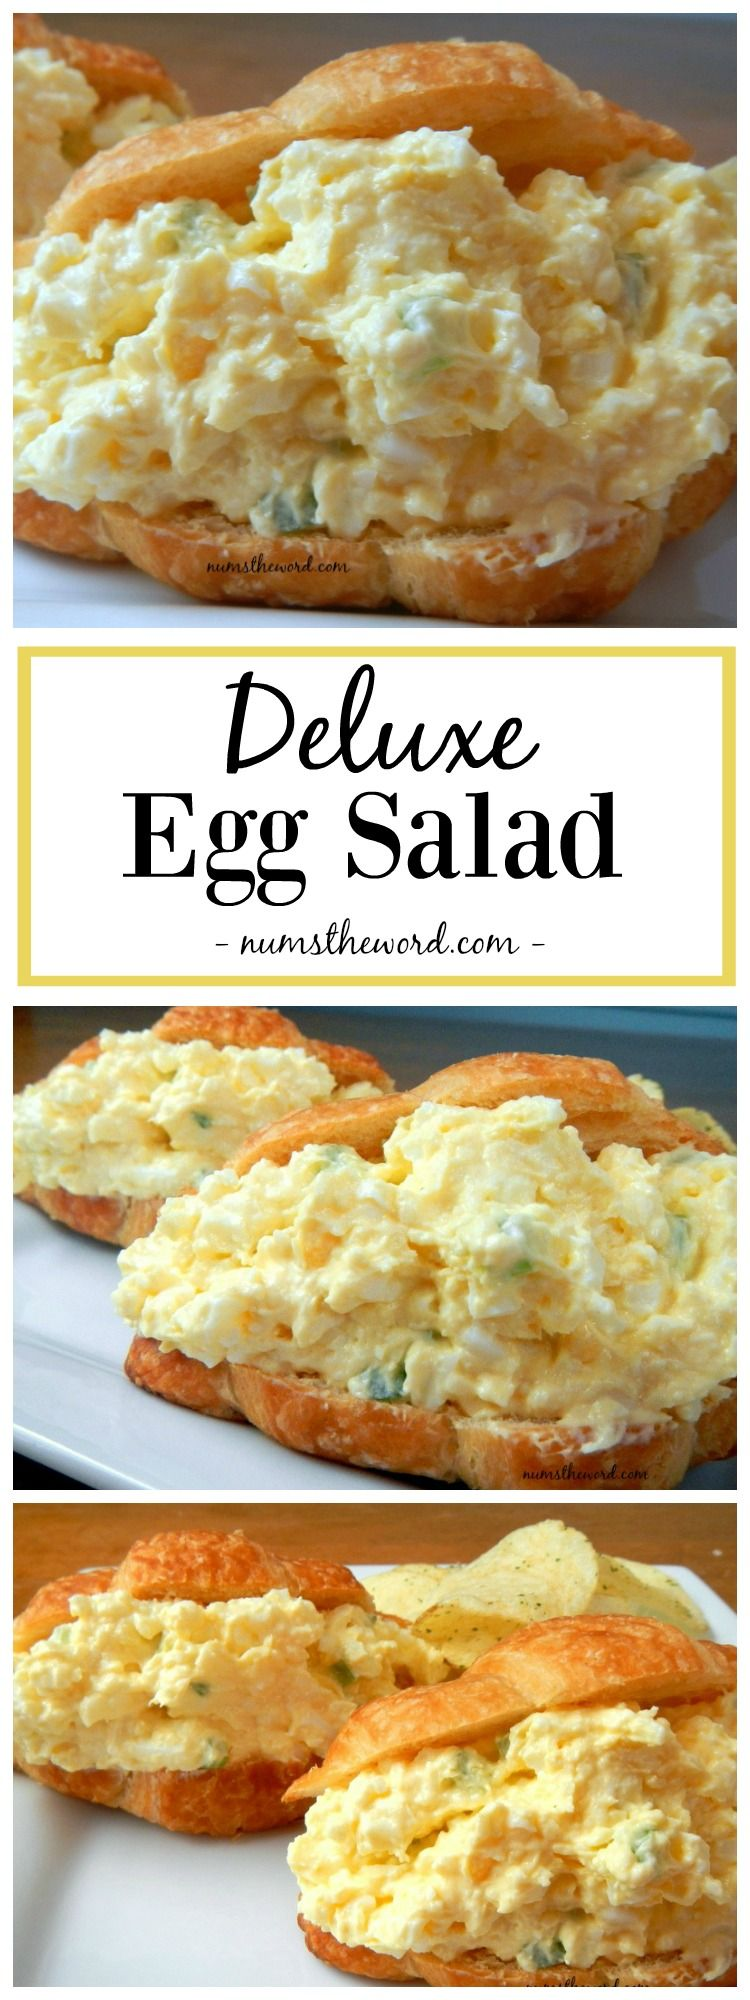 Deluxe Egg Salad Looking For An Upgrade On The Traditional Egg Salad Try This